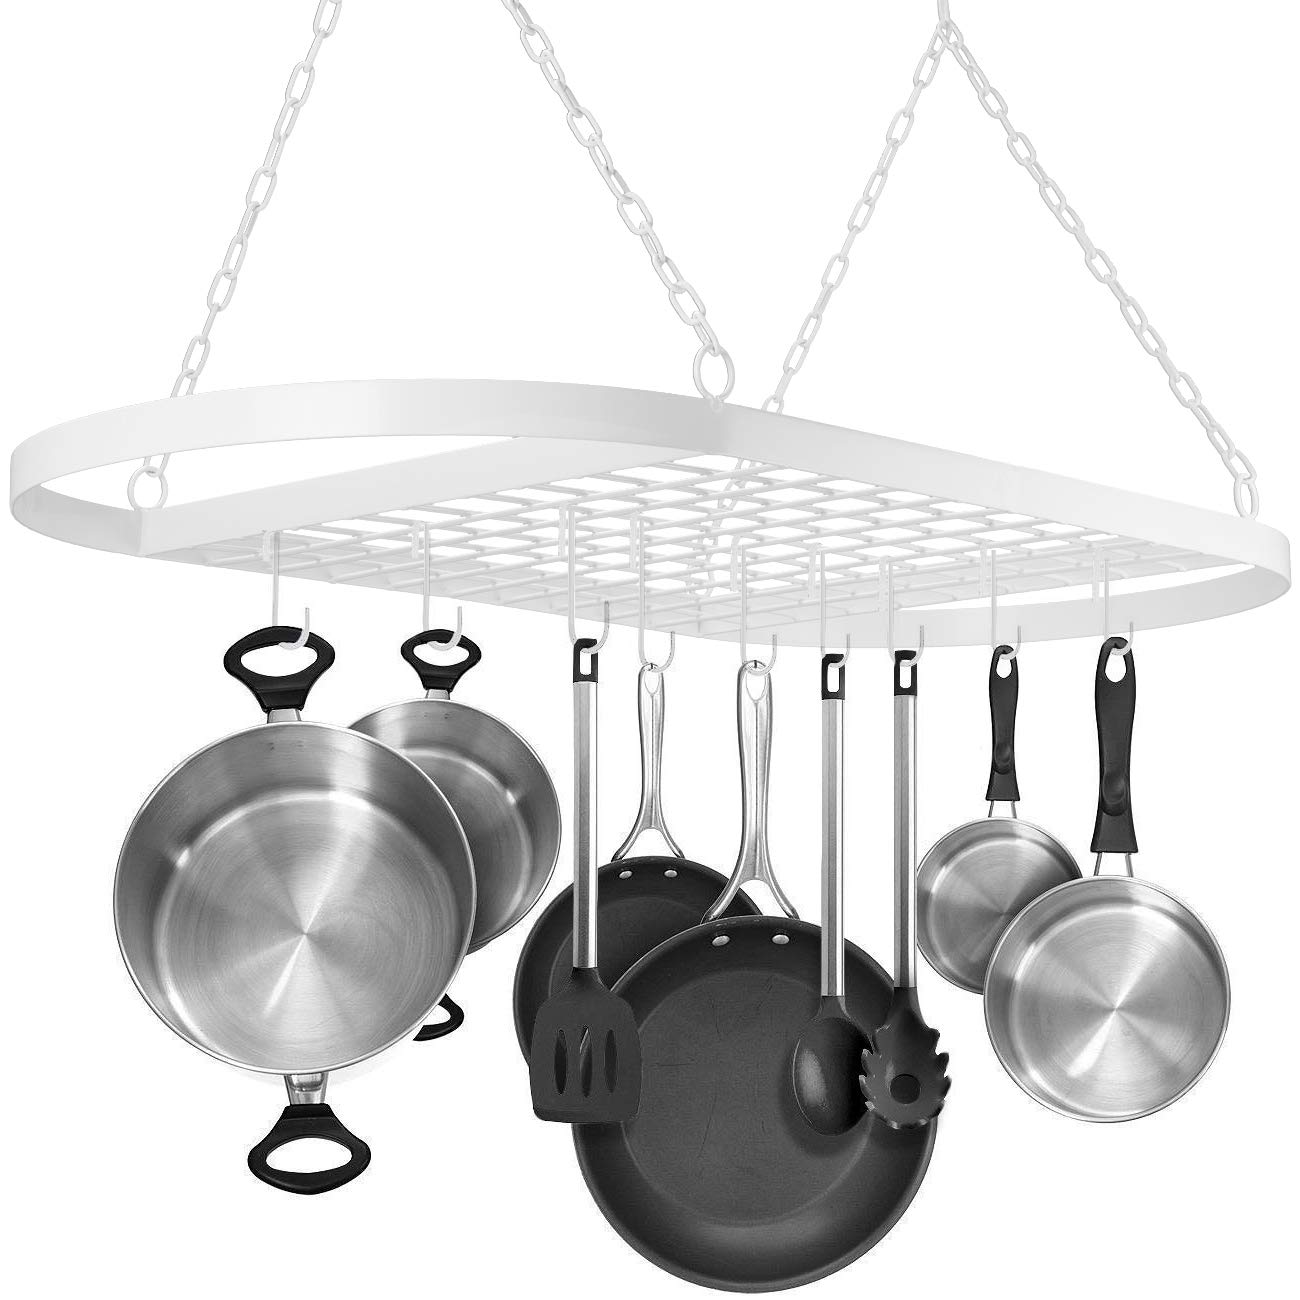 Sorbus Pot and Pan Rack for Ceiling with Hooks — Decorative Oval Mounted Storage Rack — Multi-Purpose Organizer for Home, Restaurant, Kitchen Cookware, Utensils, Books, Household (White)